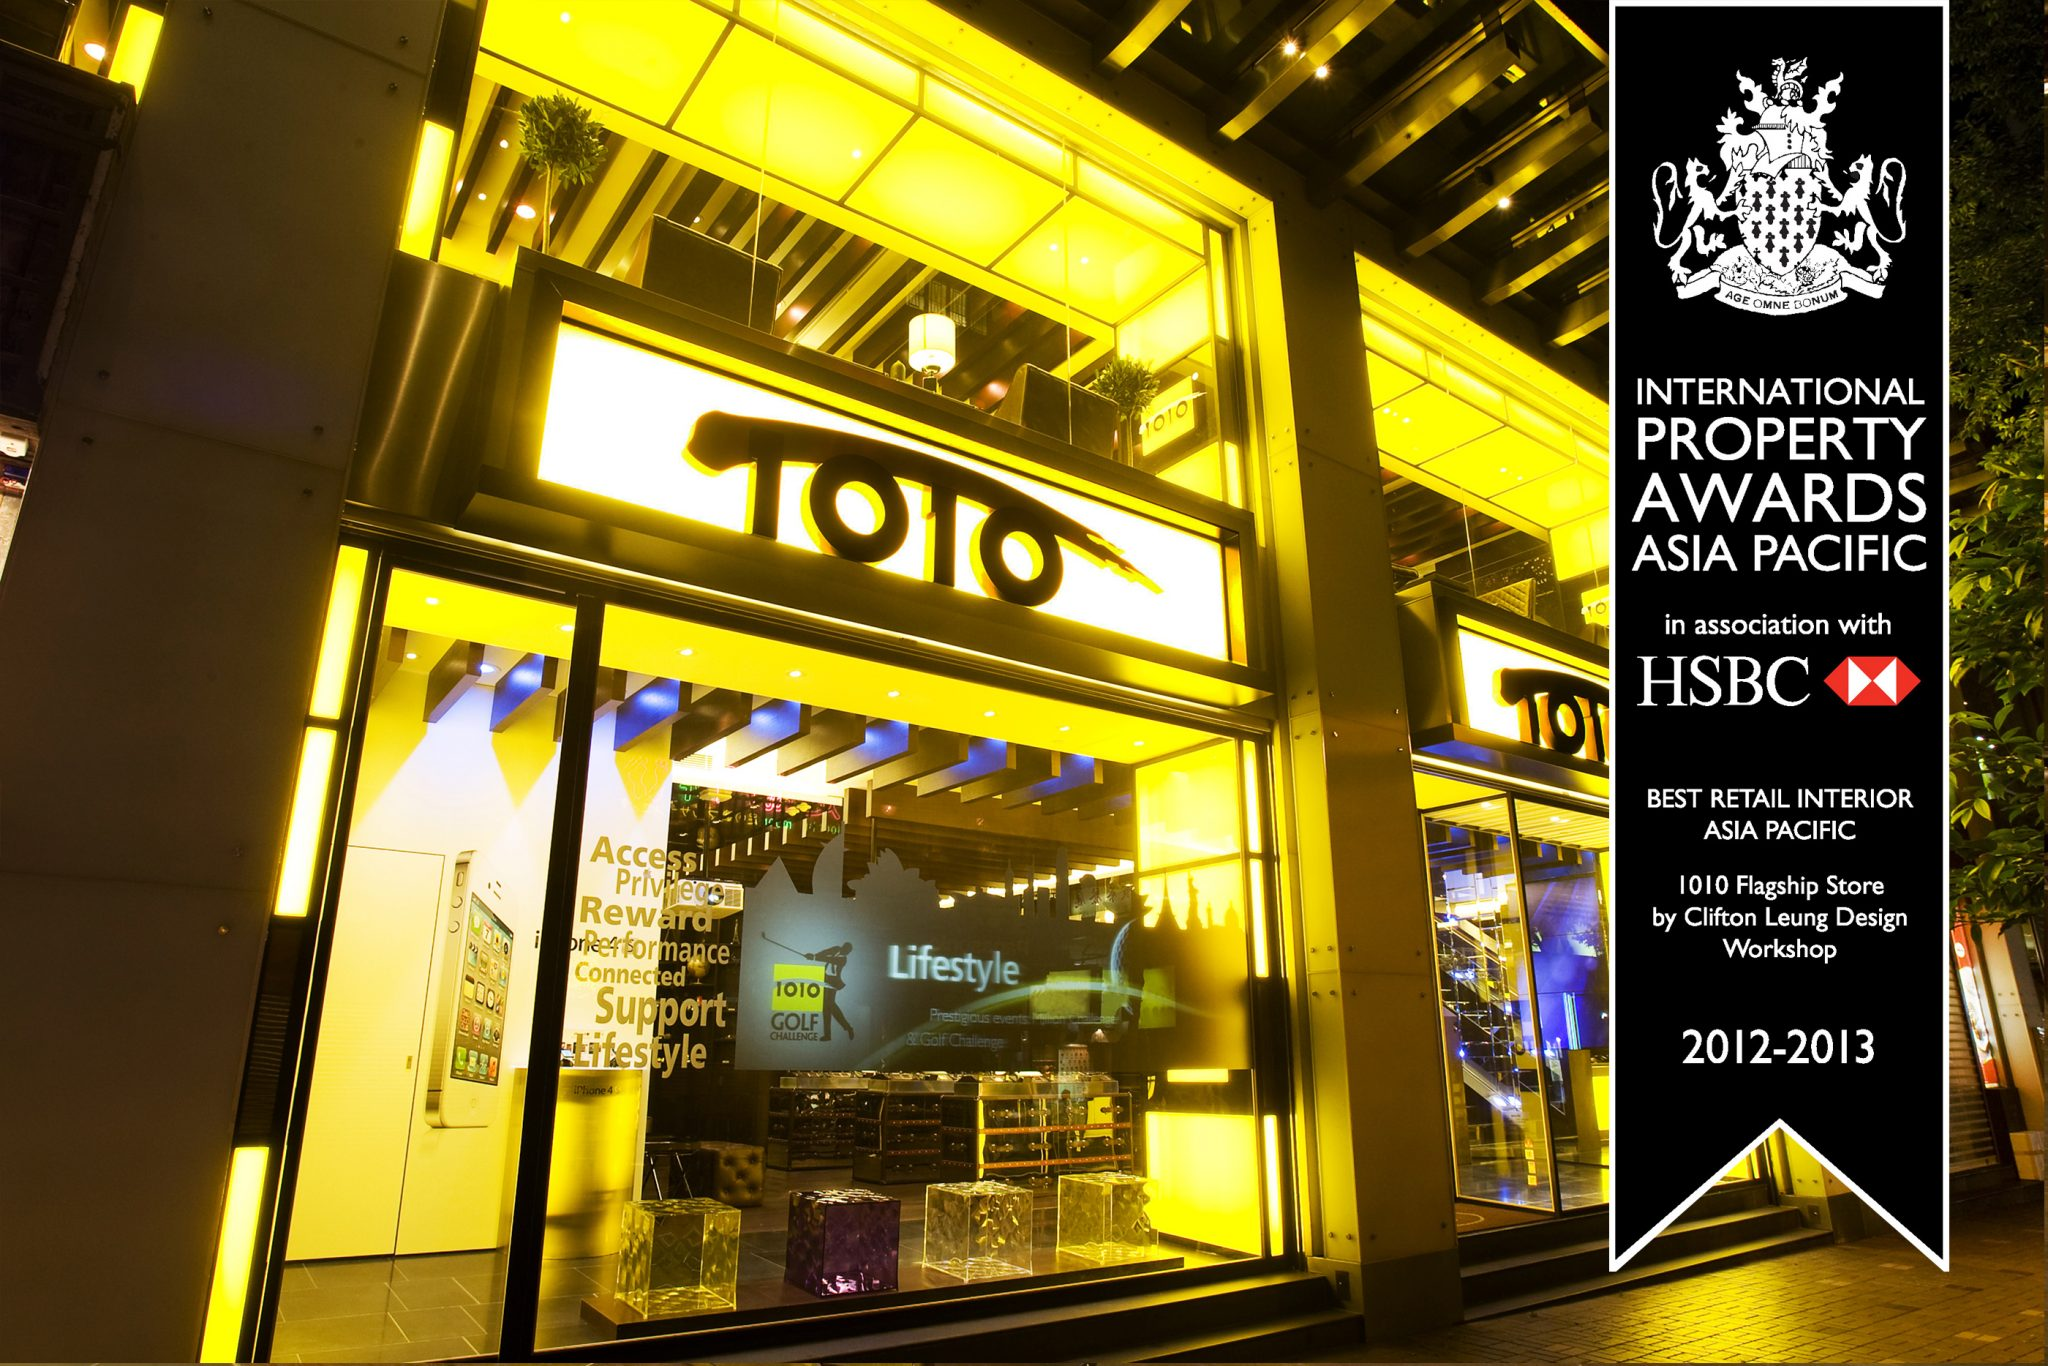 1O1O Flagship Store – Best Retail Interior Asia Pacific, Asia Pacific Property Awards 2012/13